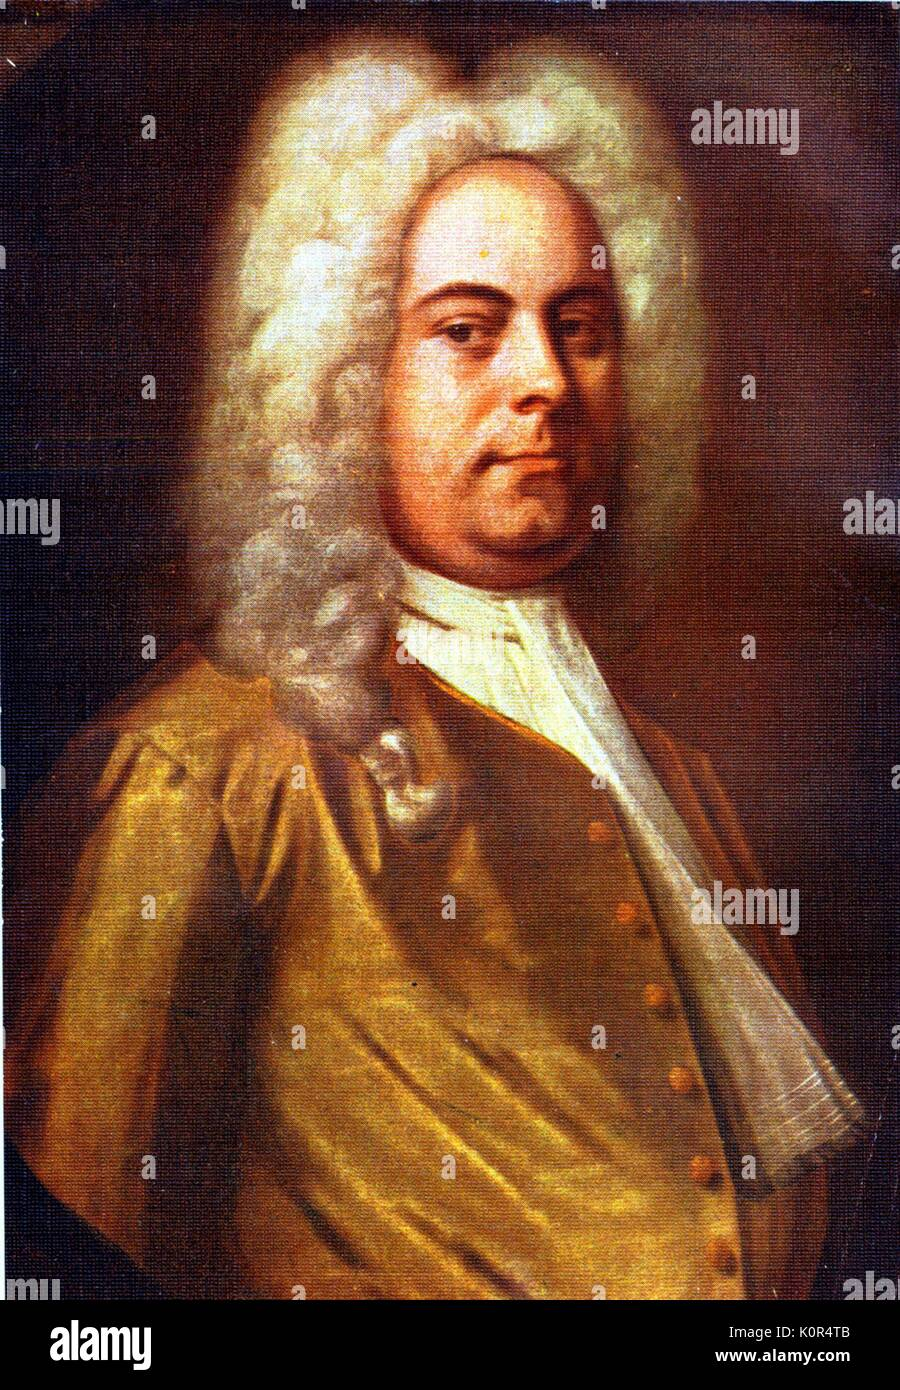 a biography of george fredrick handel a german composer George frederick handel: biography & george frederick handel was born on february 24, 1685 in halle, germany one of the greatest composers of the late baroque period (1700-50) and, during his lifetime, perhaps the most internationally famous of all musicians.